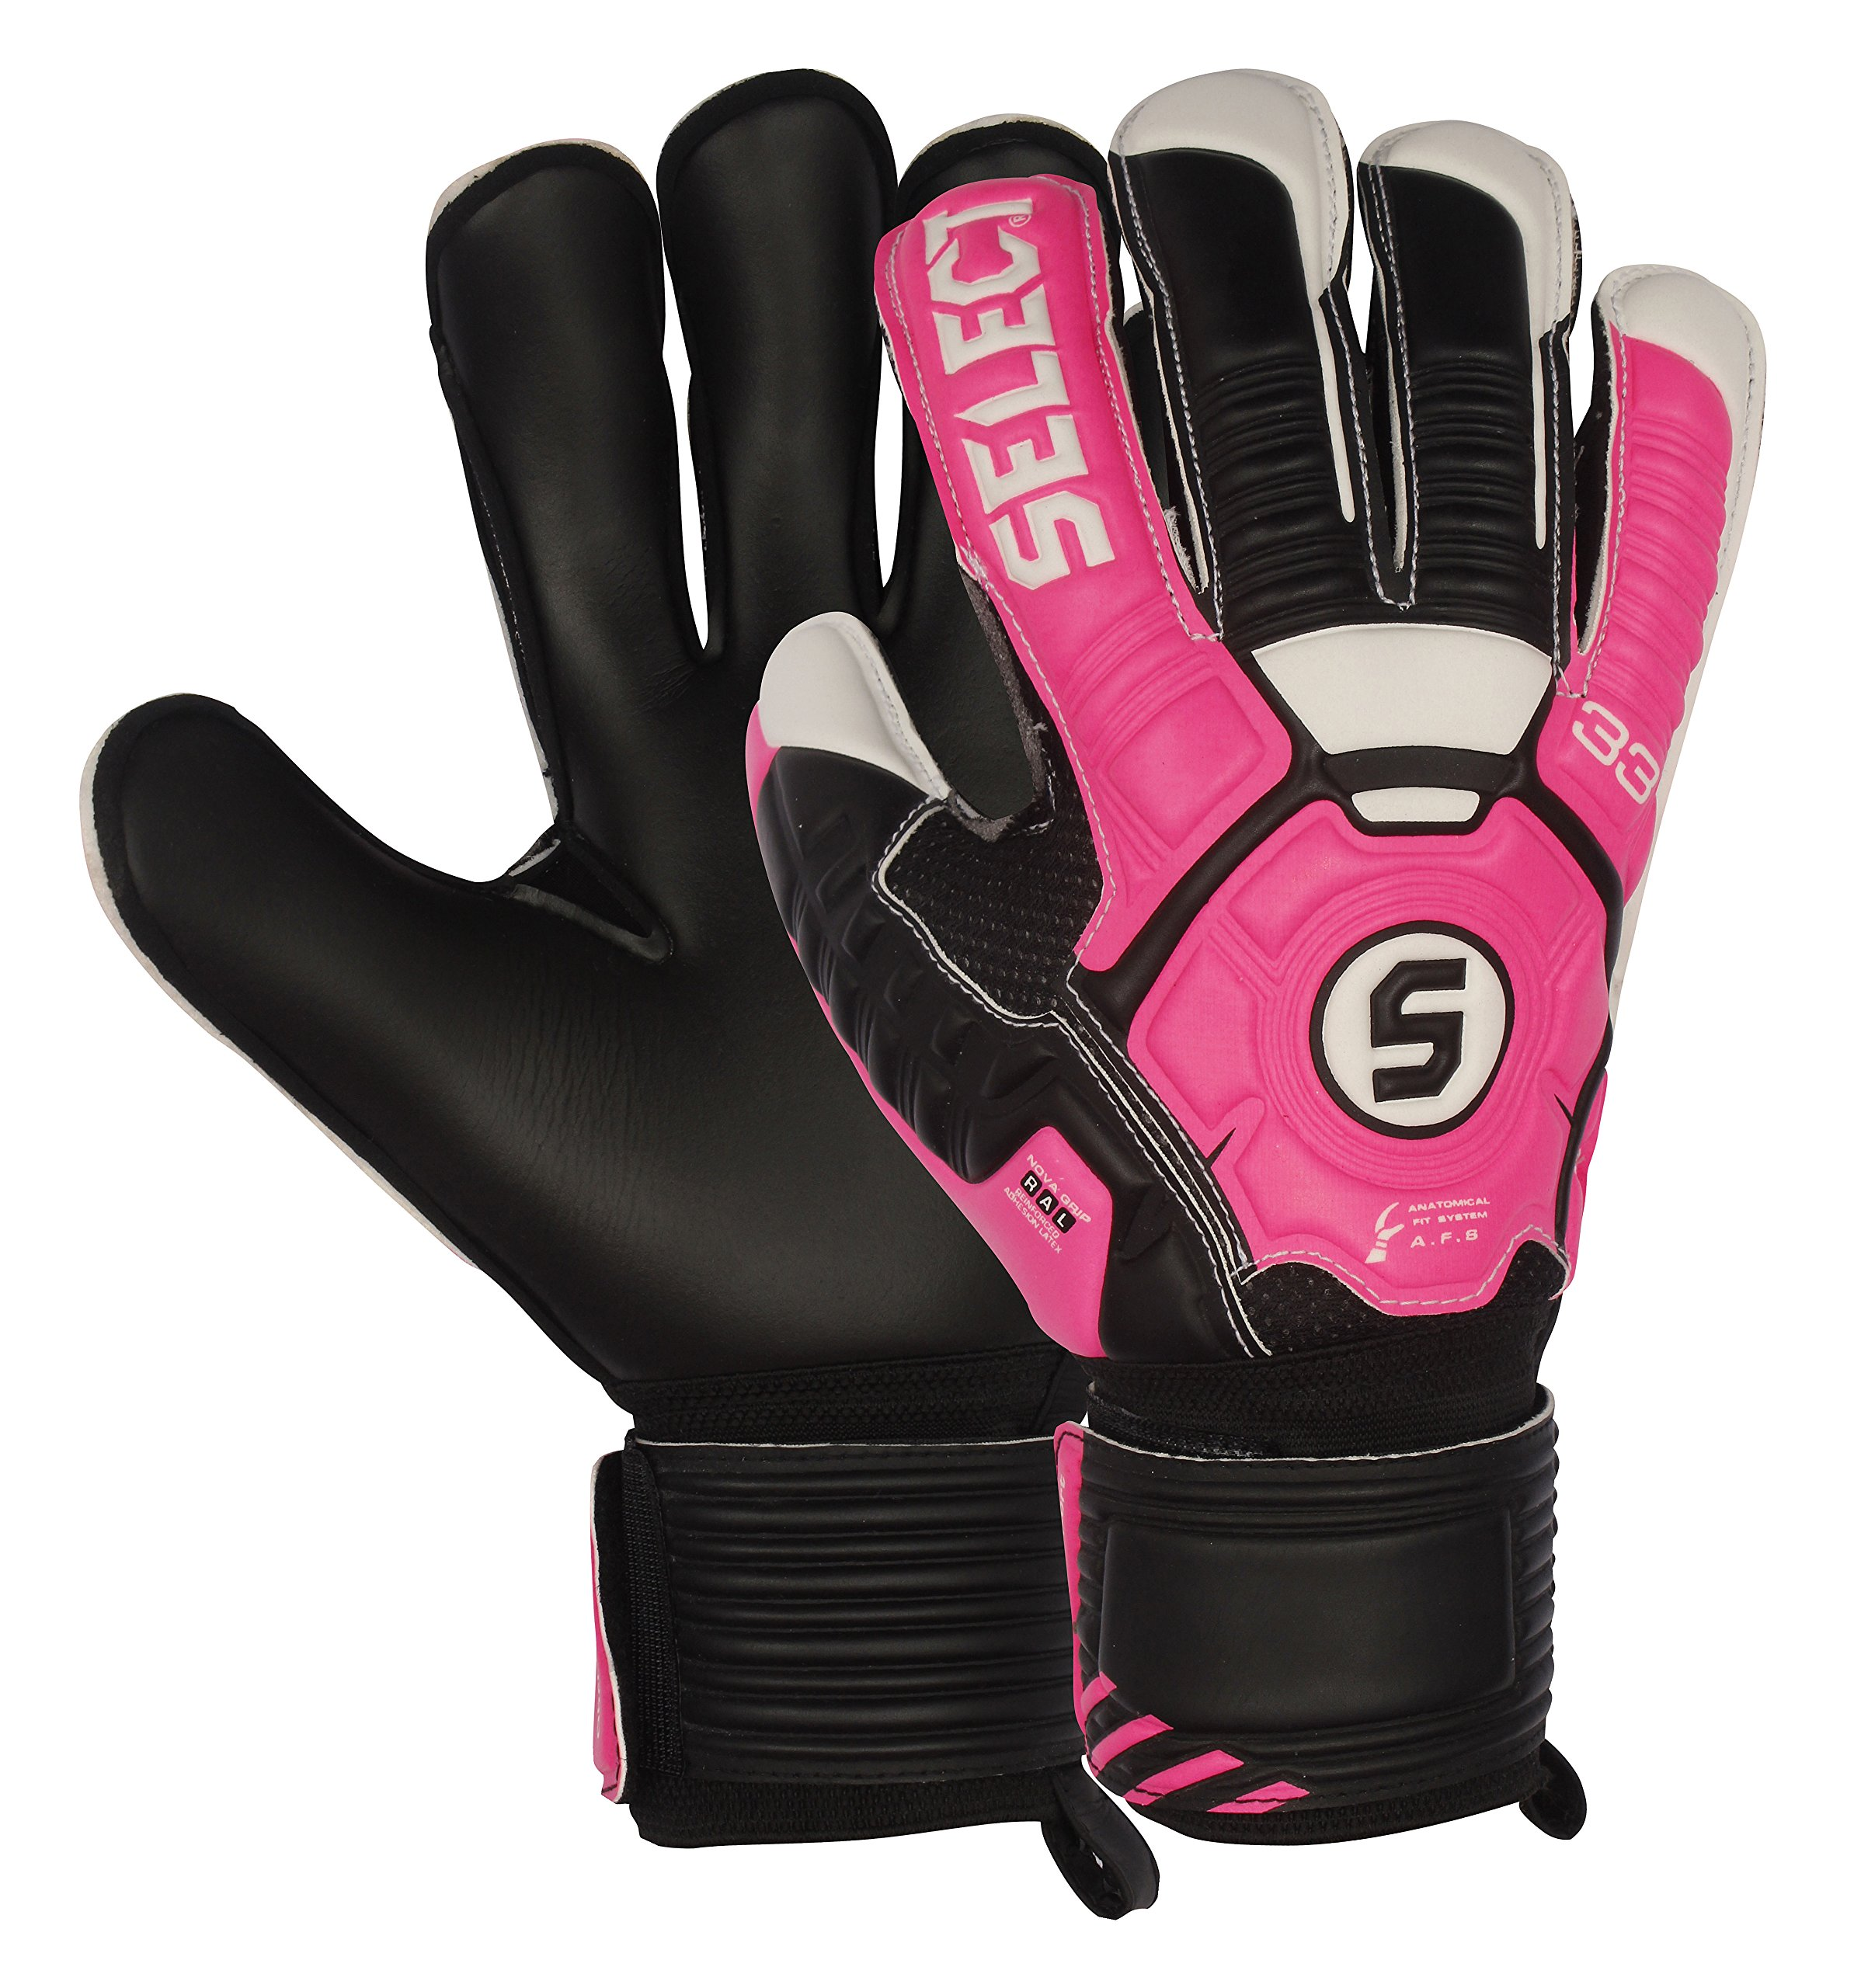 Select 33 All Round Goalkeeper Gloves with Finger Protection, Black/Pink/Cure, Size 8